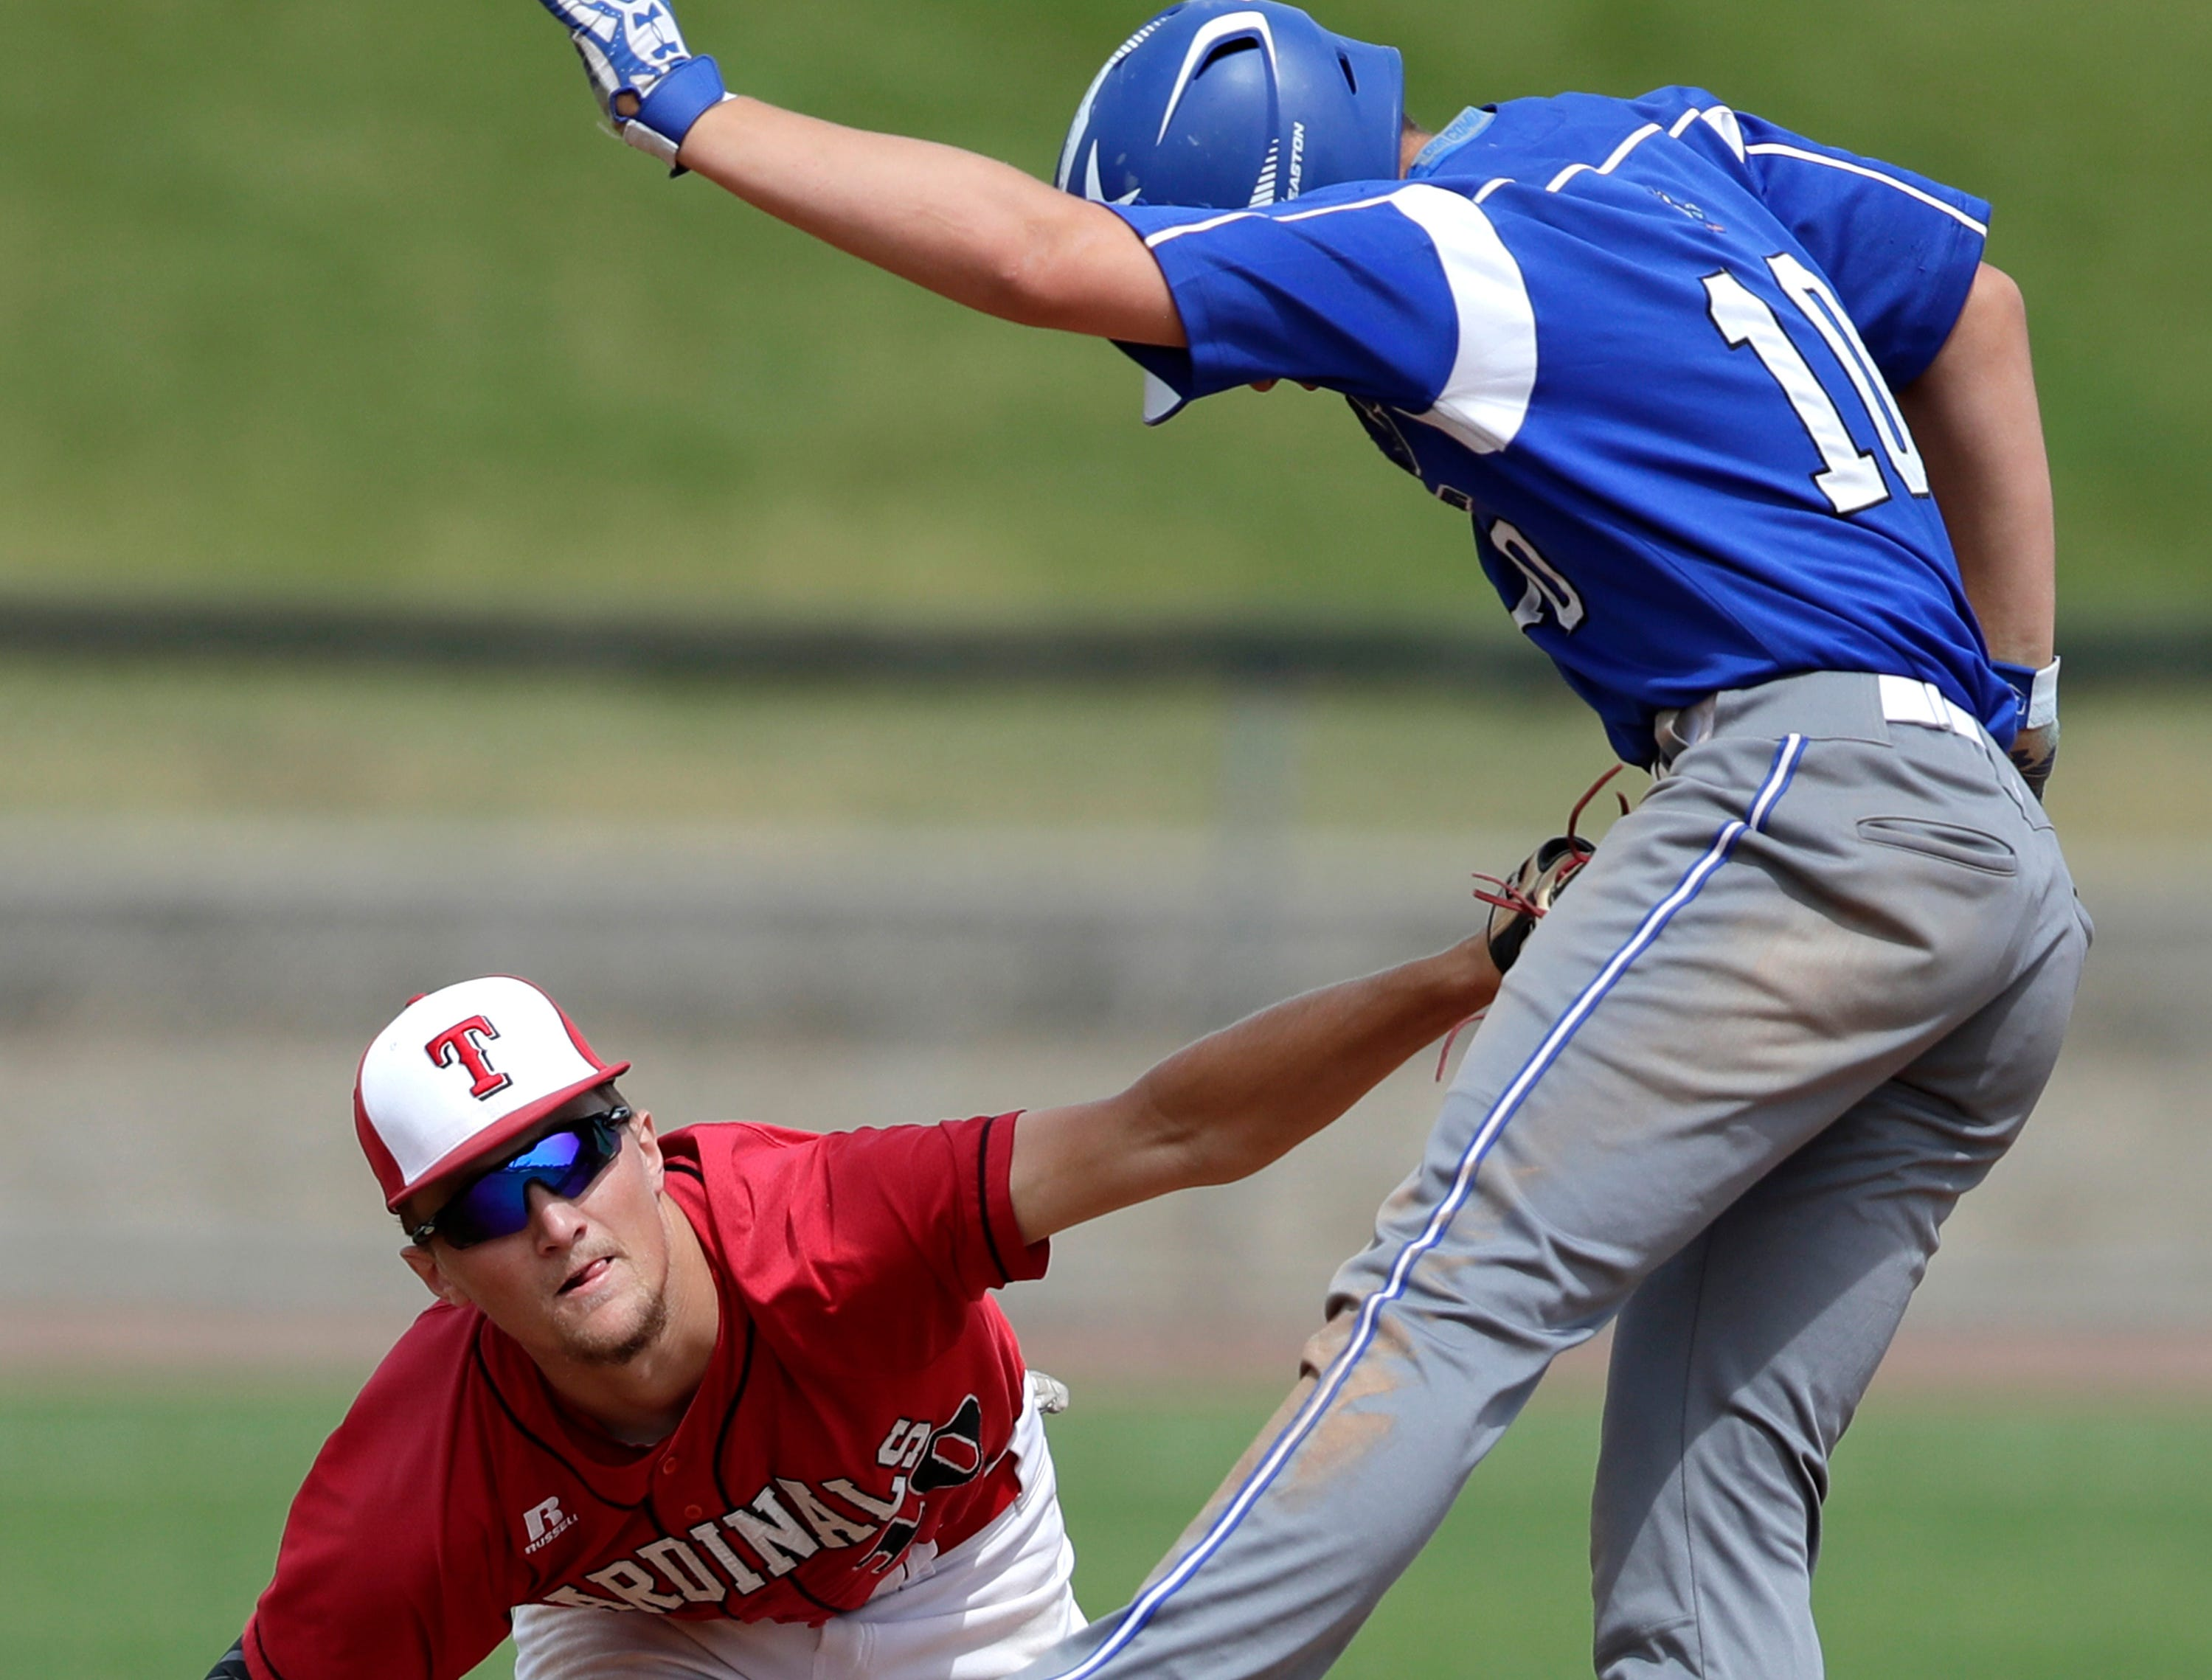 Athens High School's Dayne Diethelm is tagged at second base by Thorp High School's #10 Jakob Rosemeyer during their Division 4 championship game at the WIAA state spring baseball tournament on Thursday, June 14, 2018 at Neuroscience Group Field at Fox Cities Stadium in Grand Chute, Wis.  Athens defeated Thorp 13 to 10.